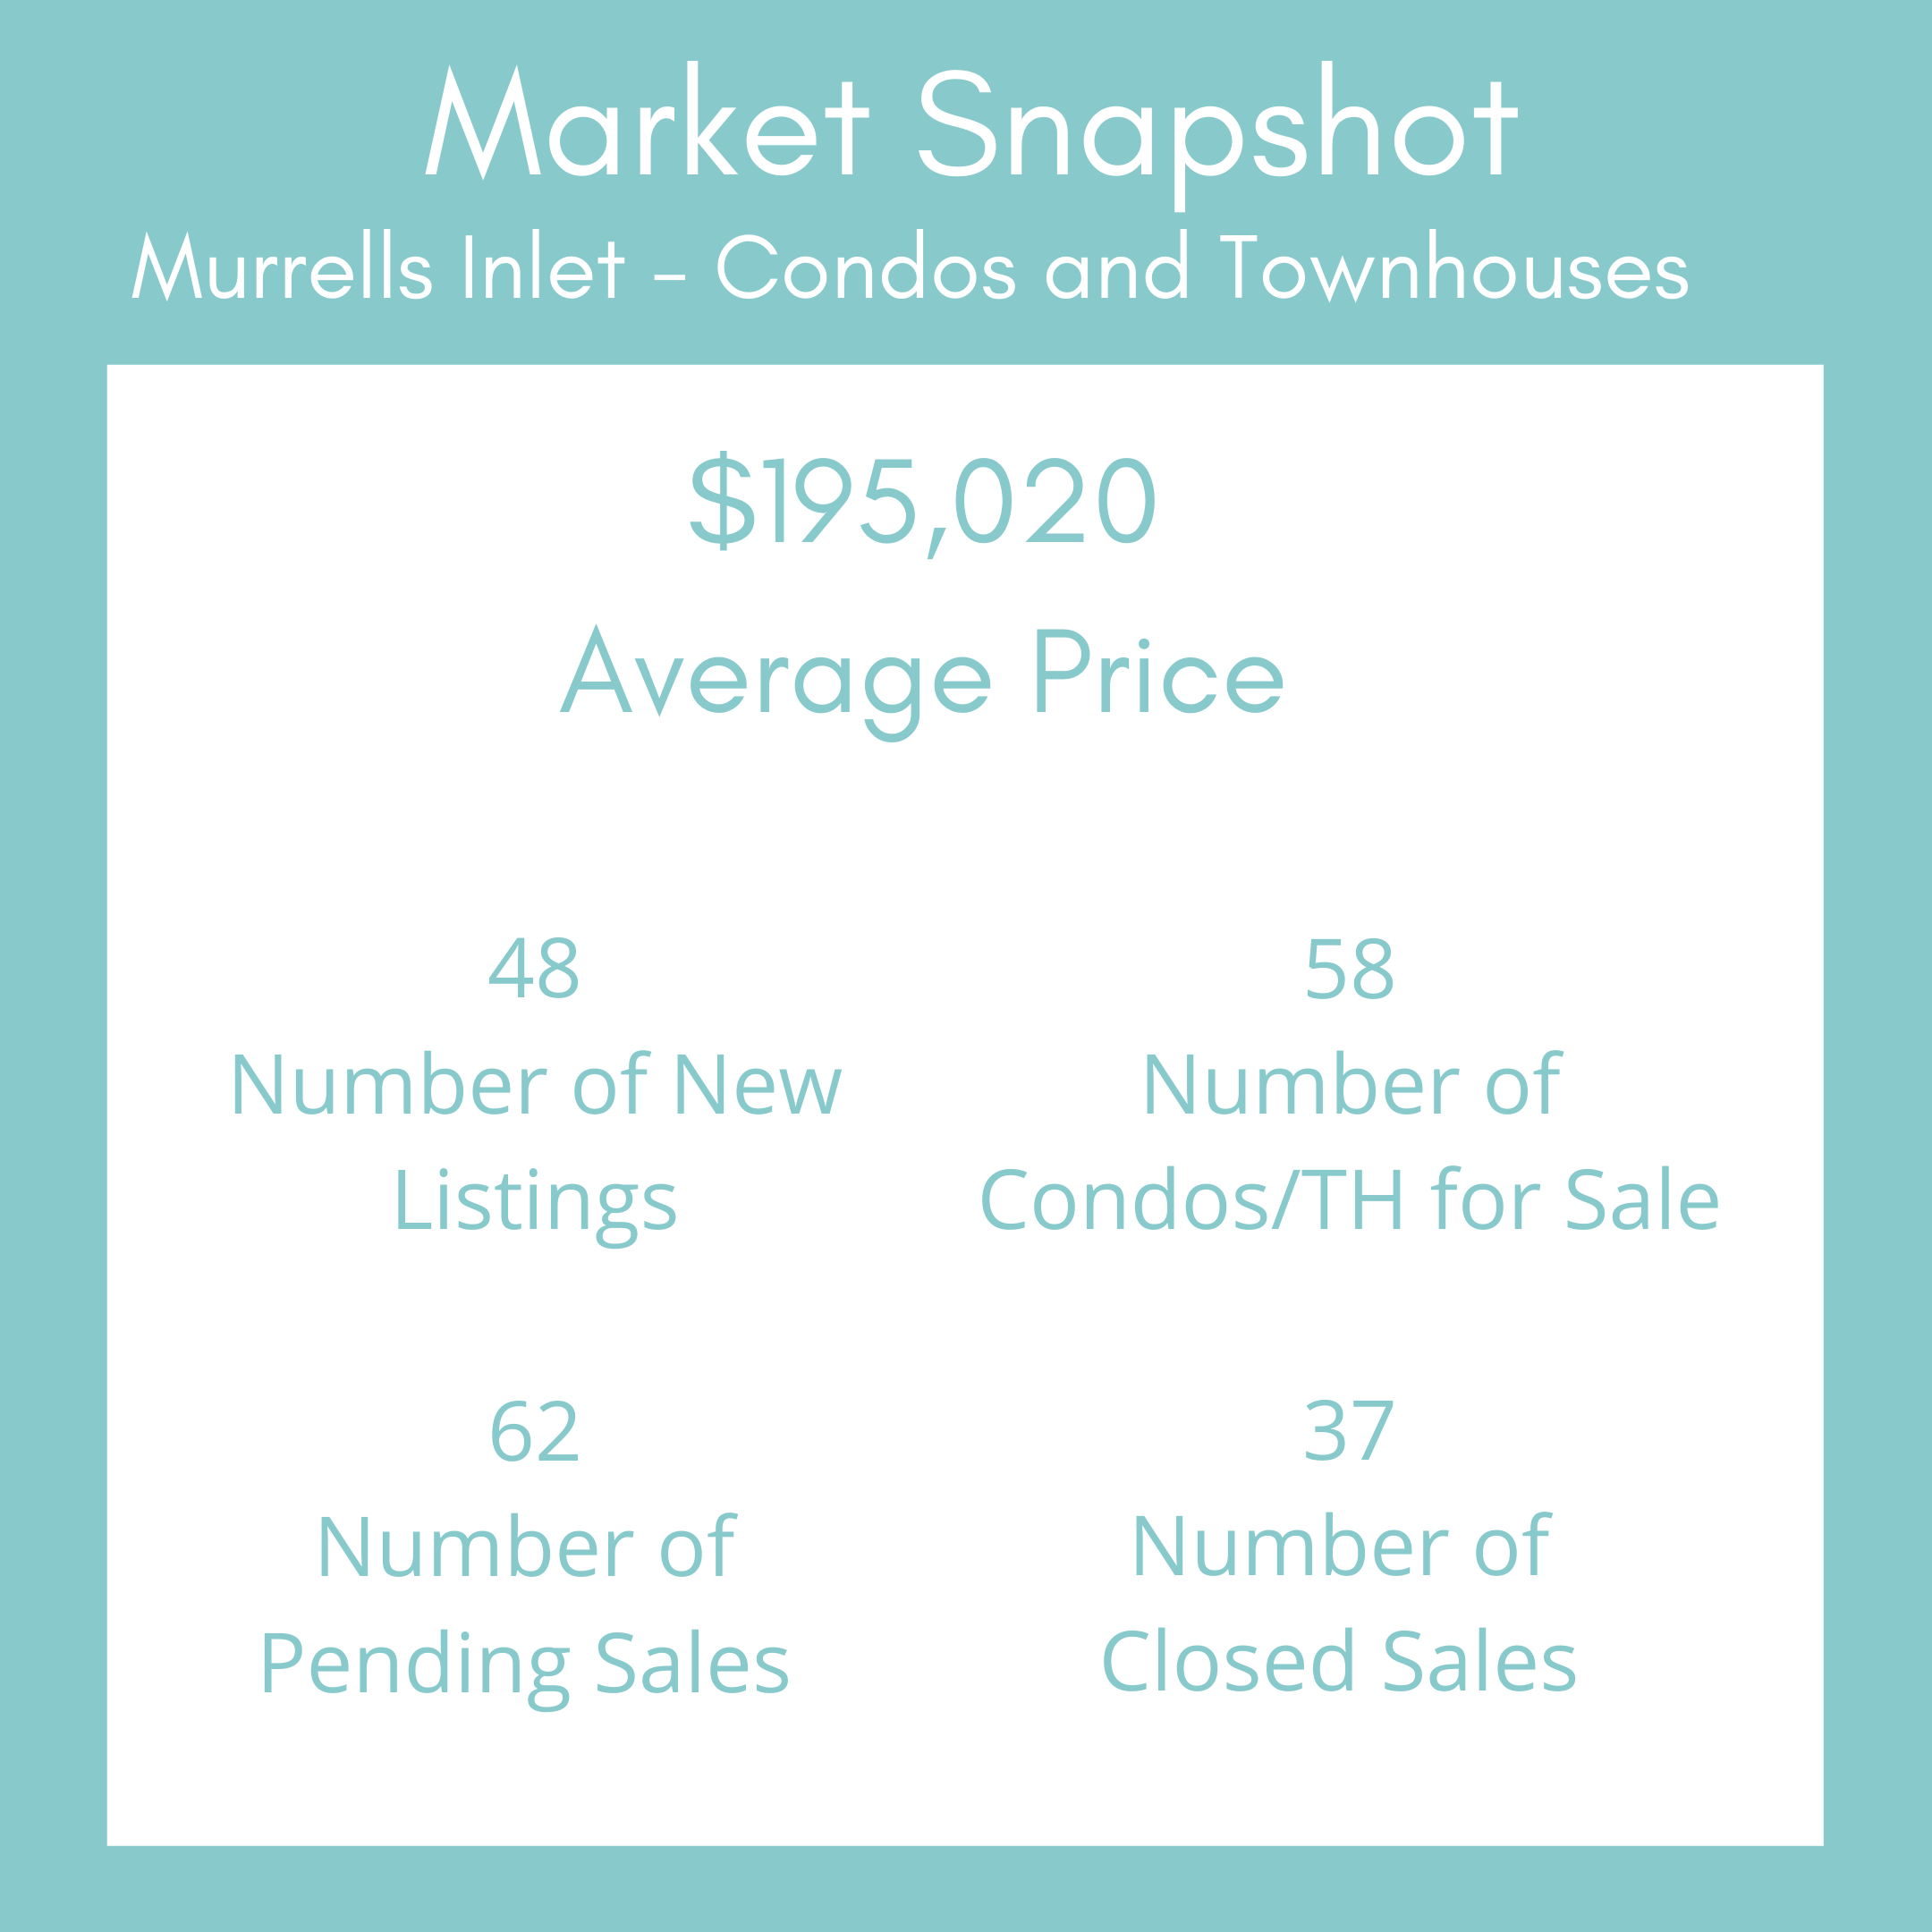 Condos_Townhouses Market Snapshot Template - Murrells Inlet March 2021